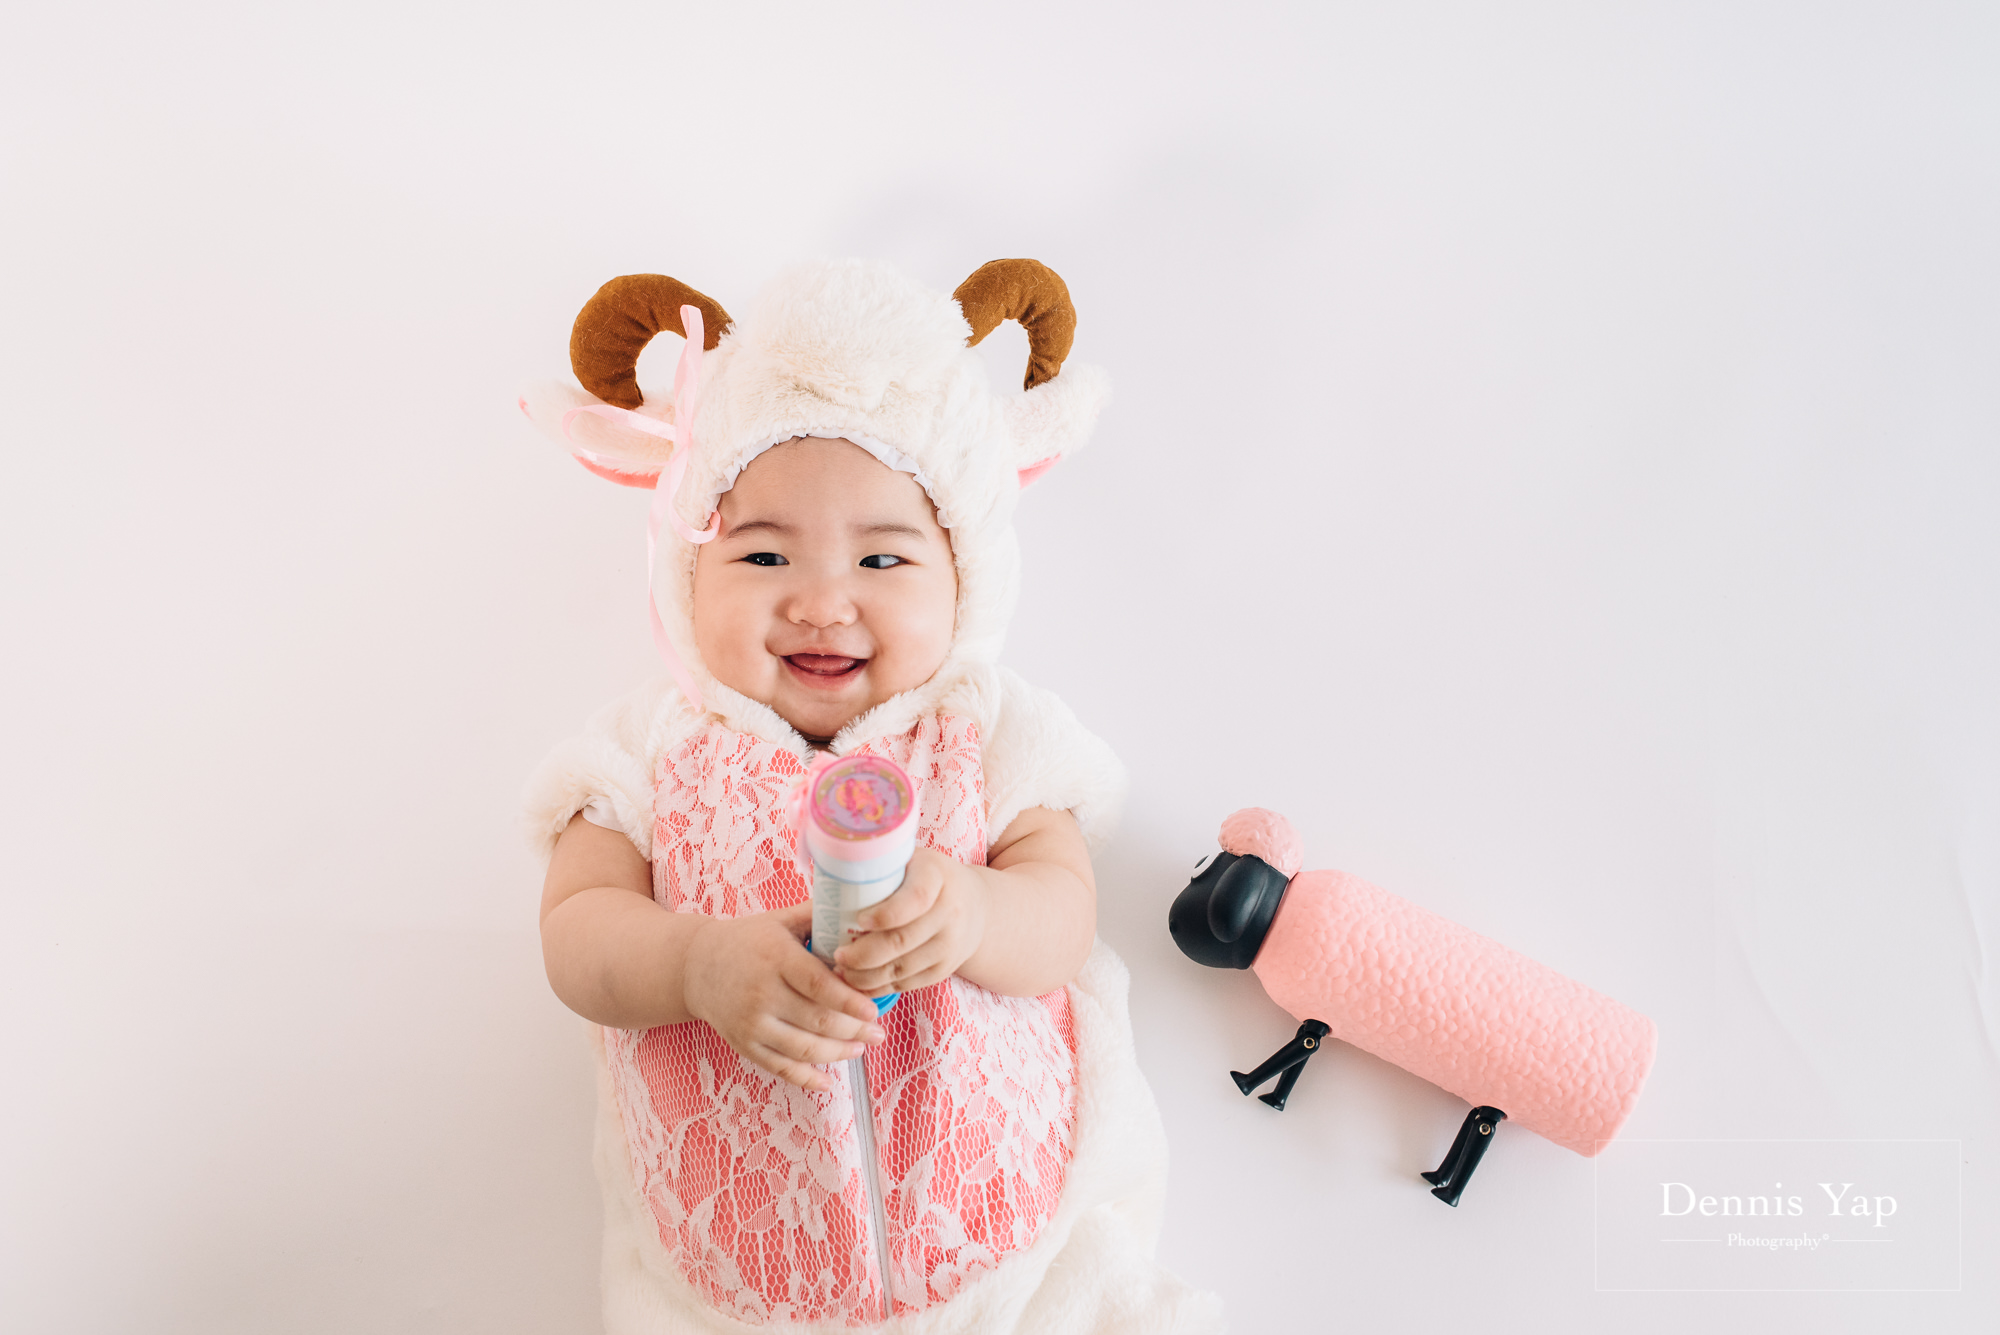 isaac evon family baby portrait funny style dennis yap photography-16.jpg